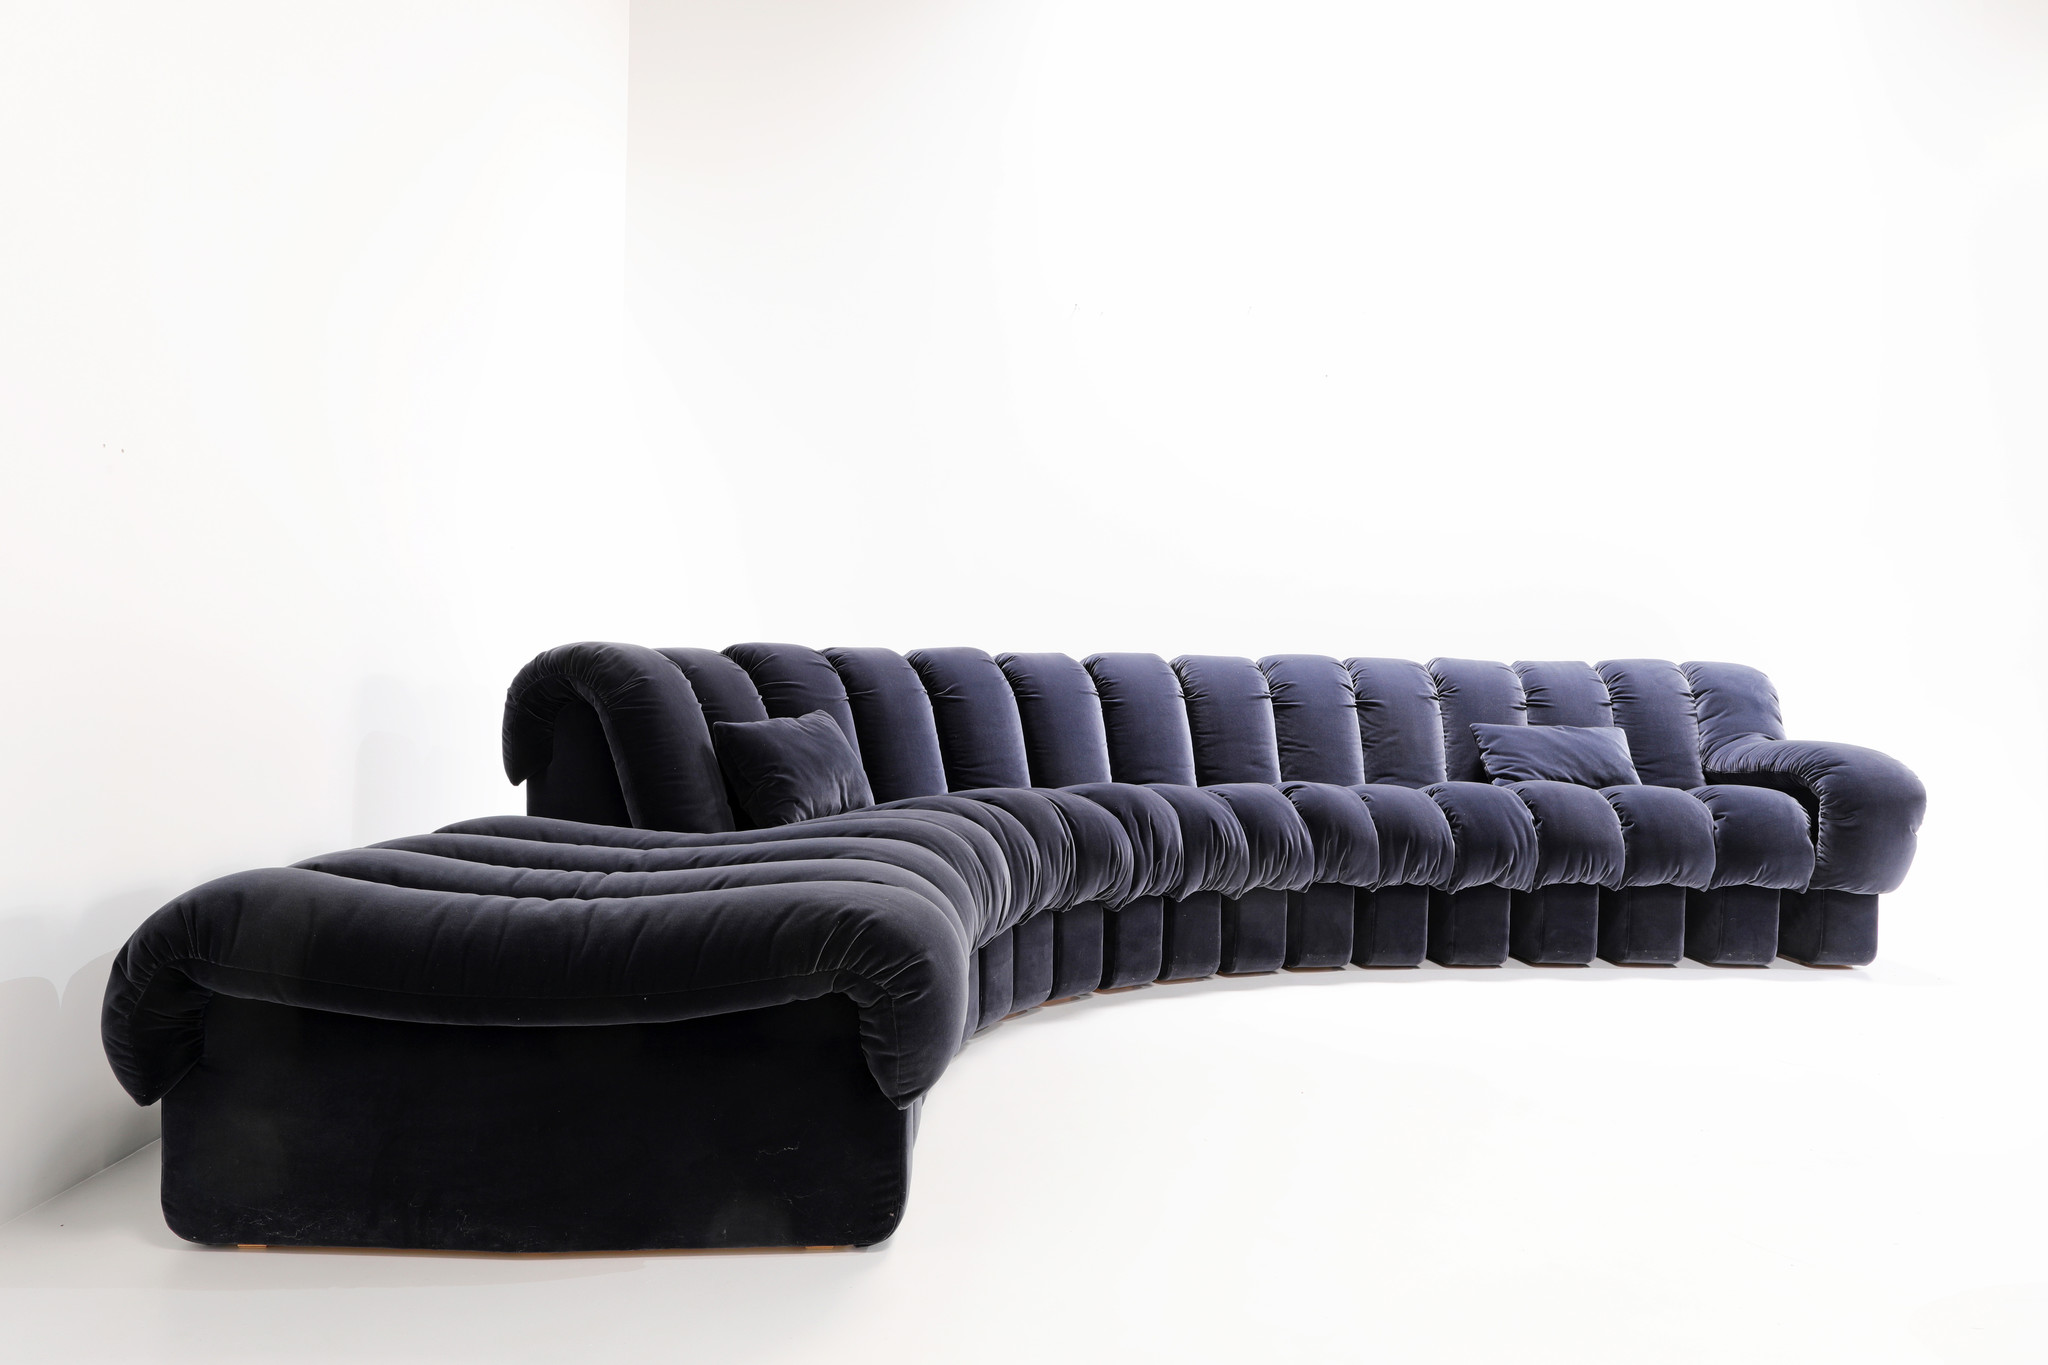 """THE ICONIC """"SNAKE SOFA"""" DE SEDE DS600"""